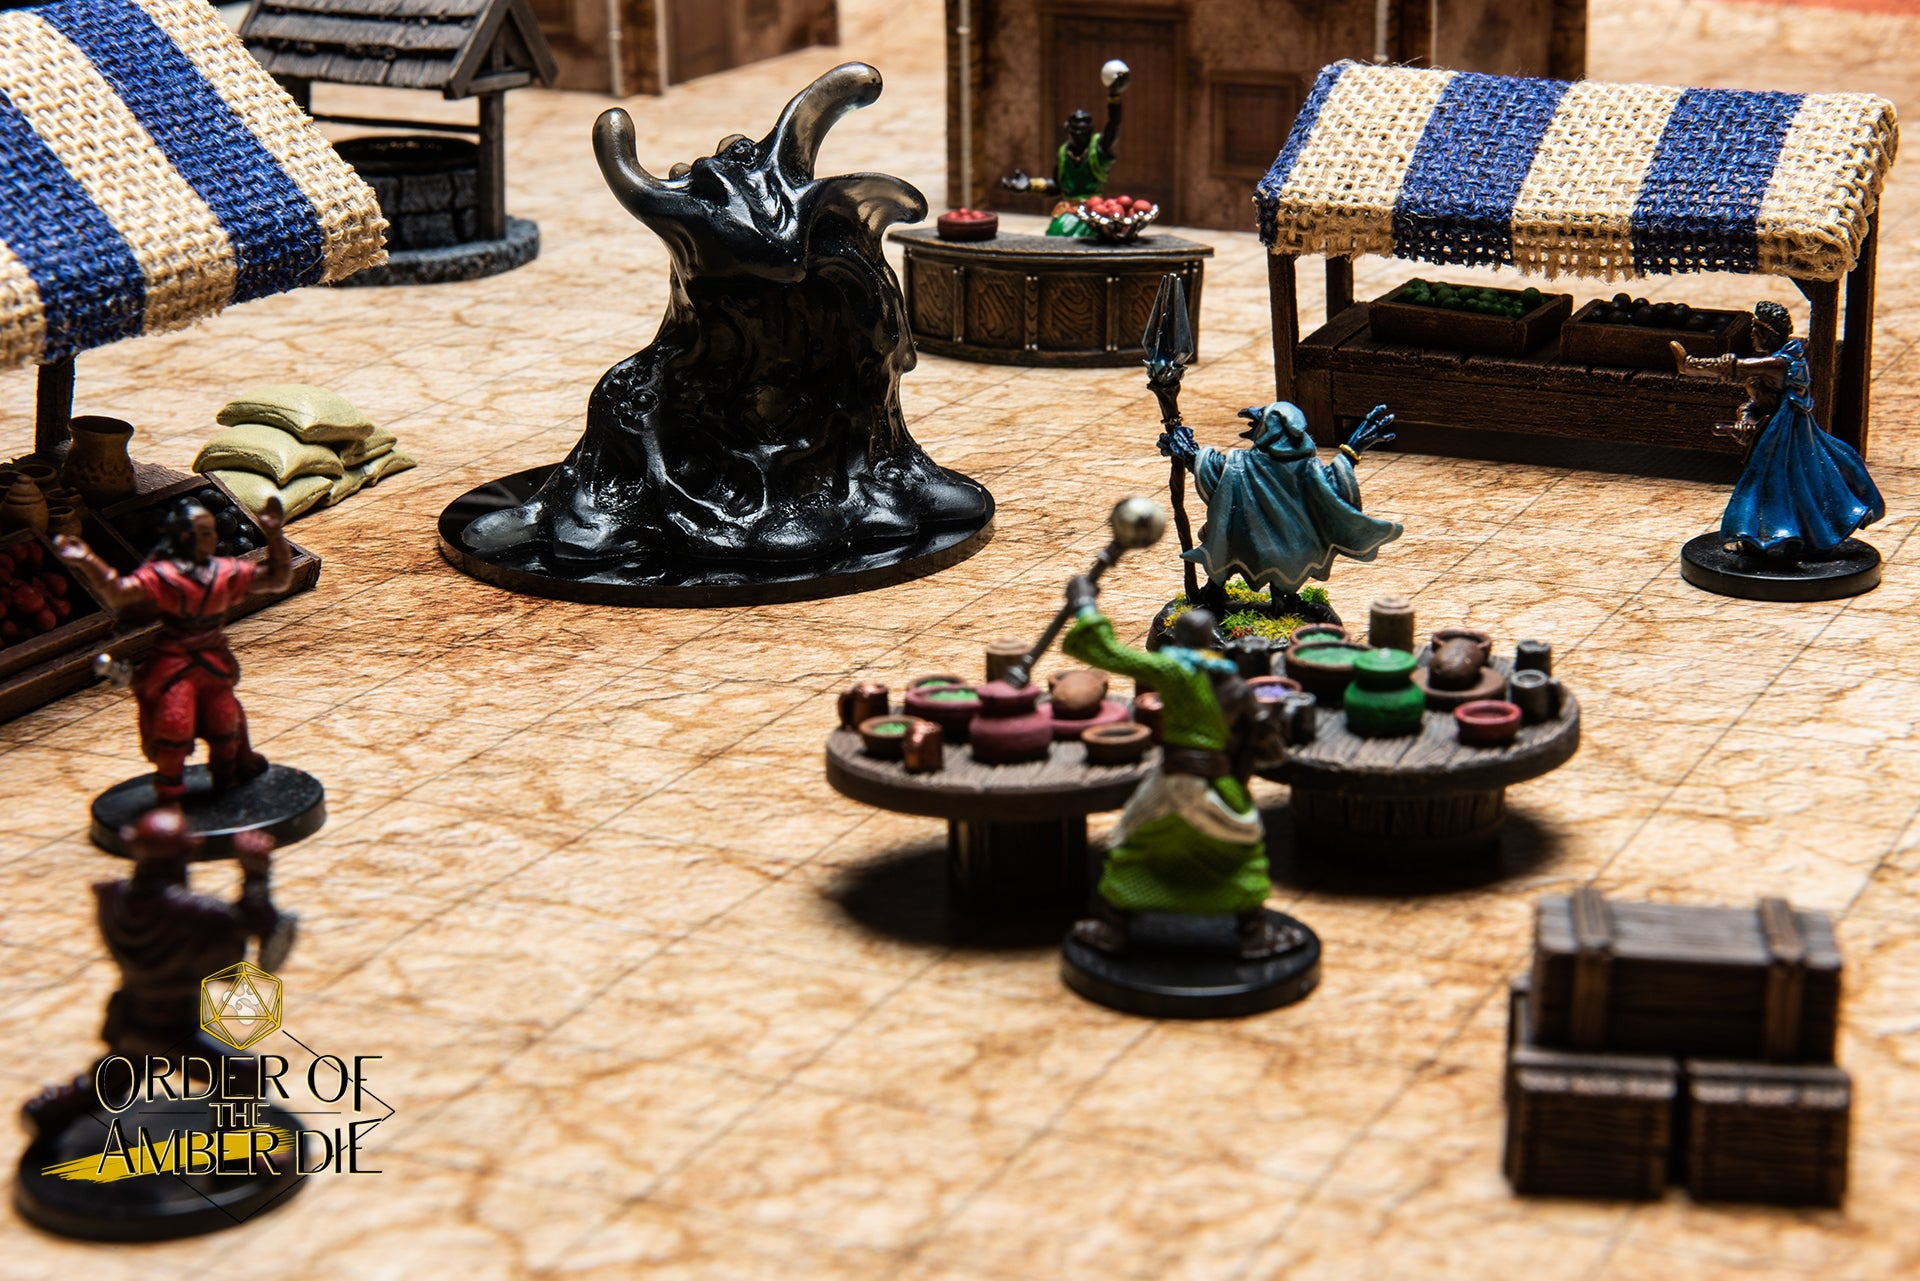 A model of a town marketplace, The players' figures suround and defend the market from a large Ooze